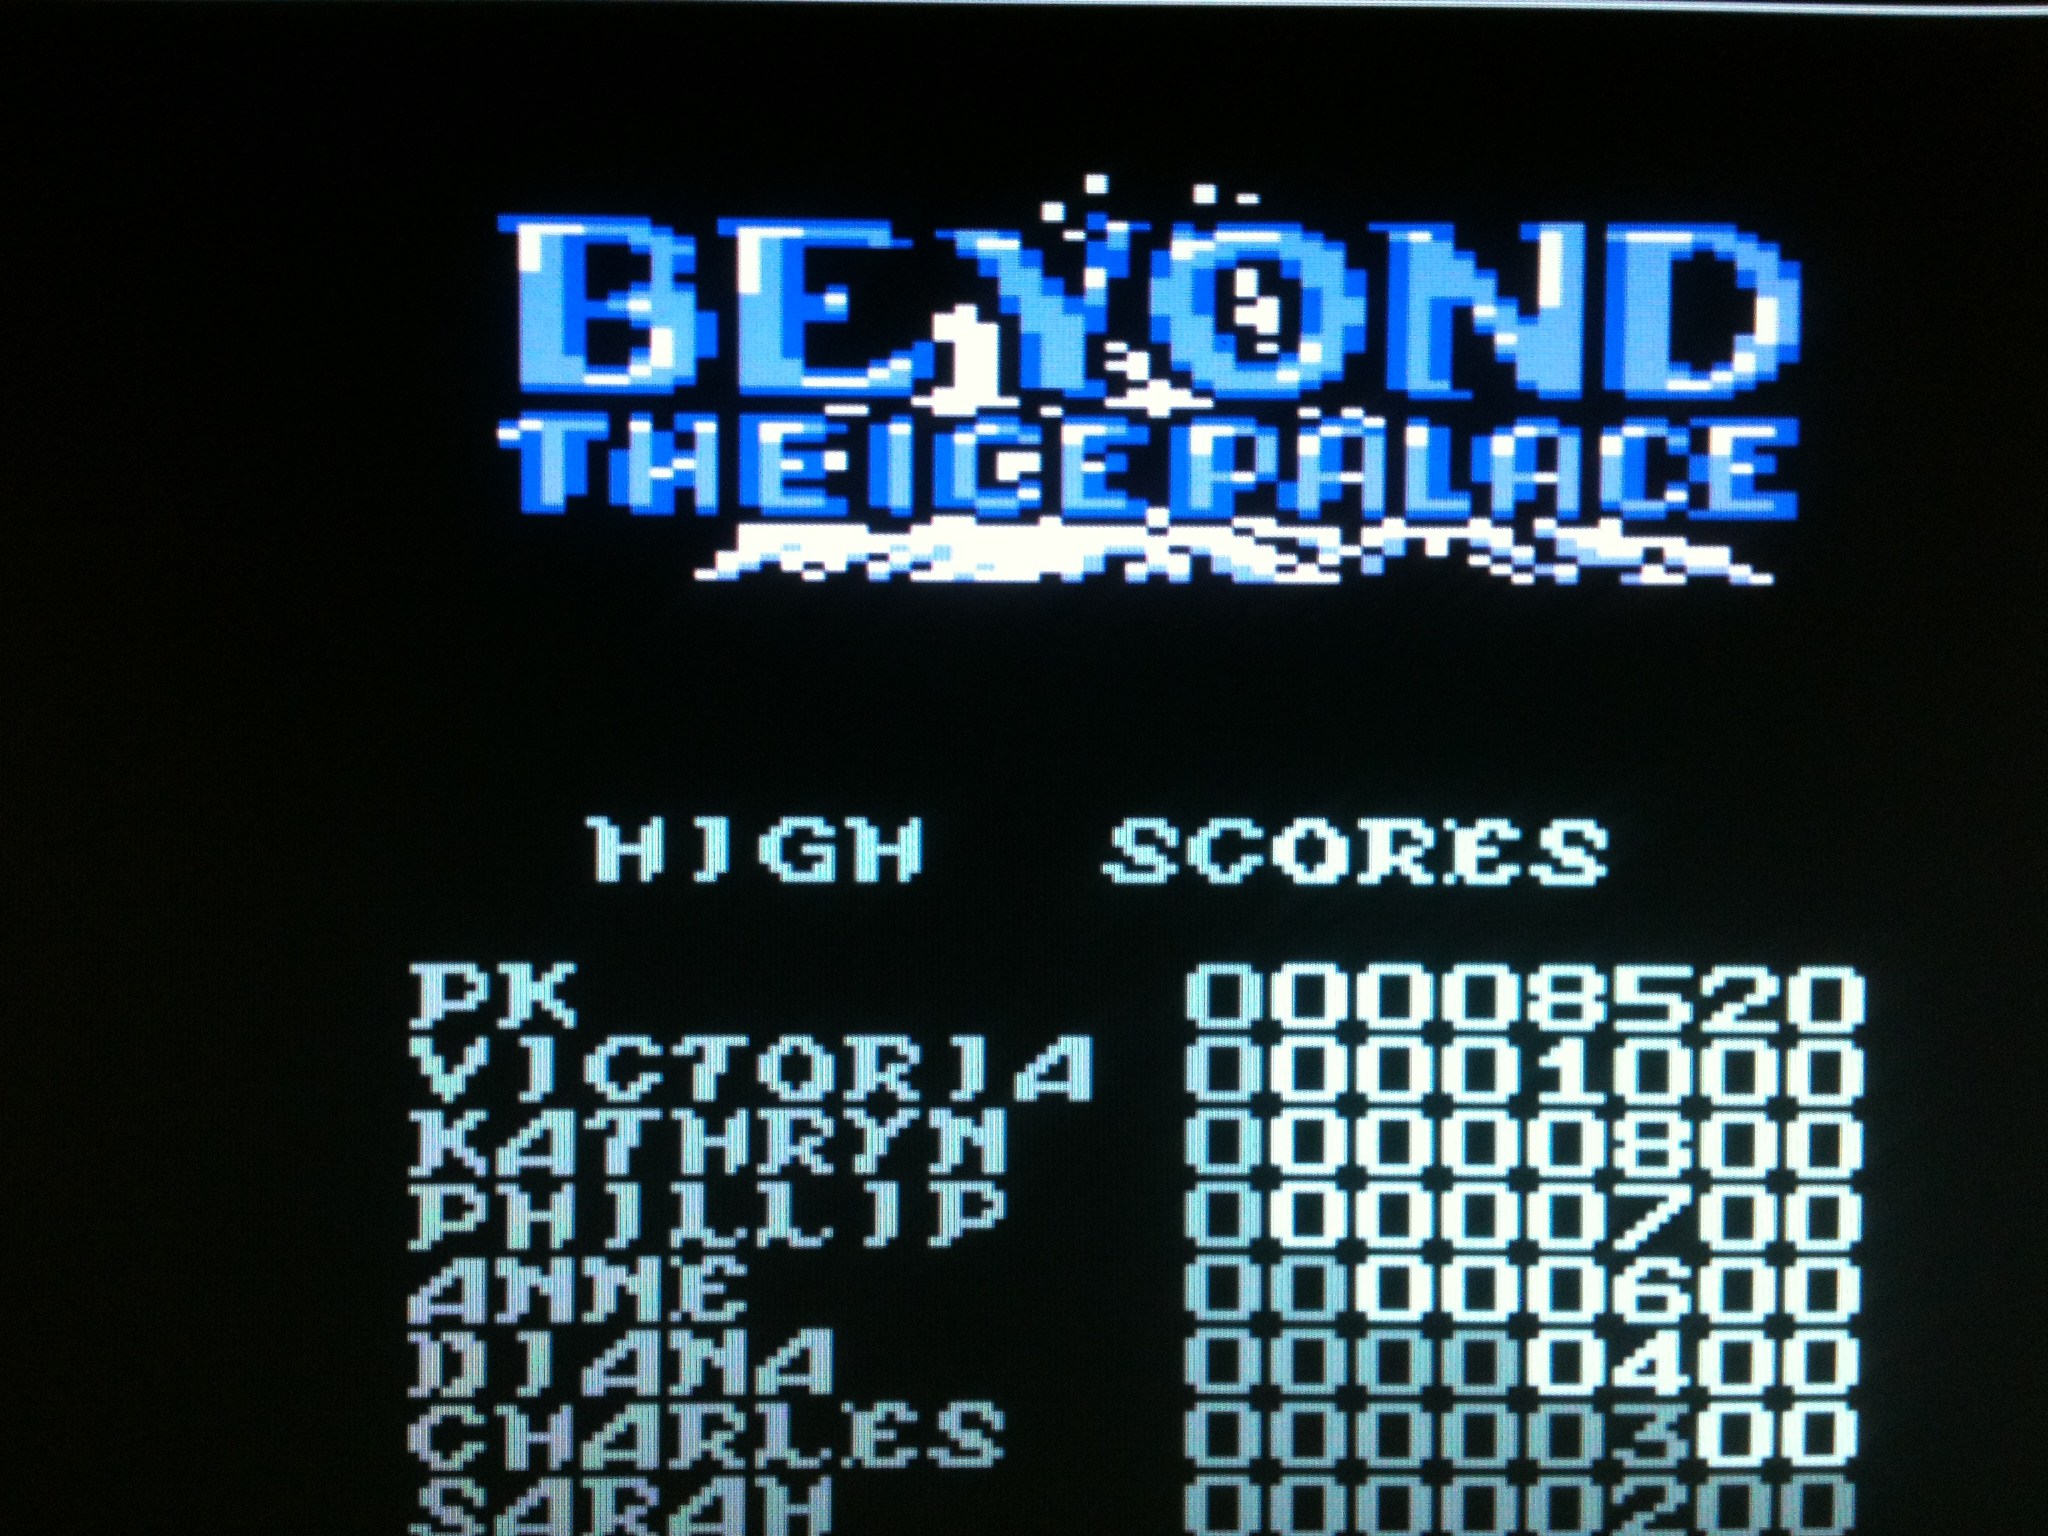 kernzy: Beyond the Ice Palace (Commodore 64 Emulated) 8,520 points on 2015-09-06 19:46:38